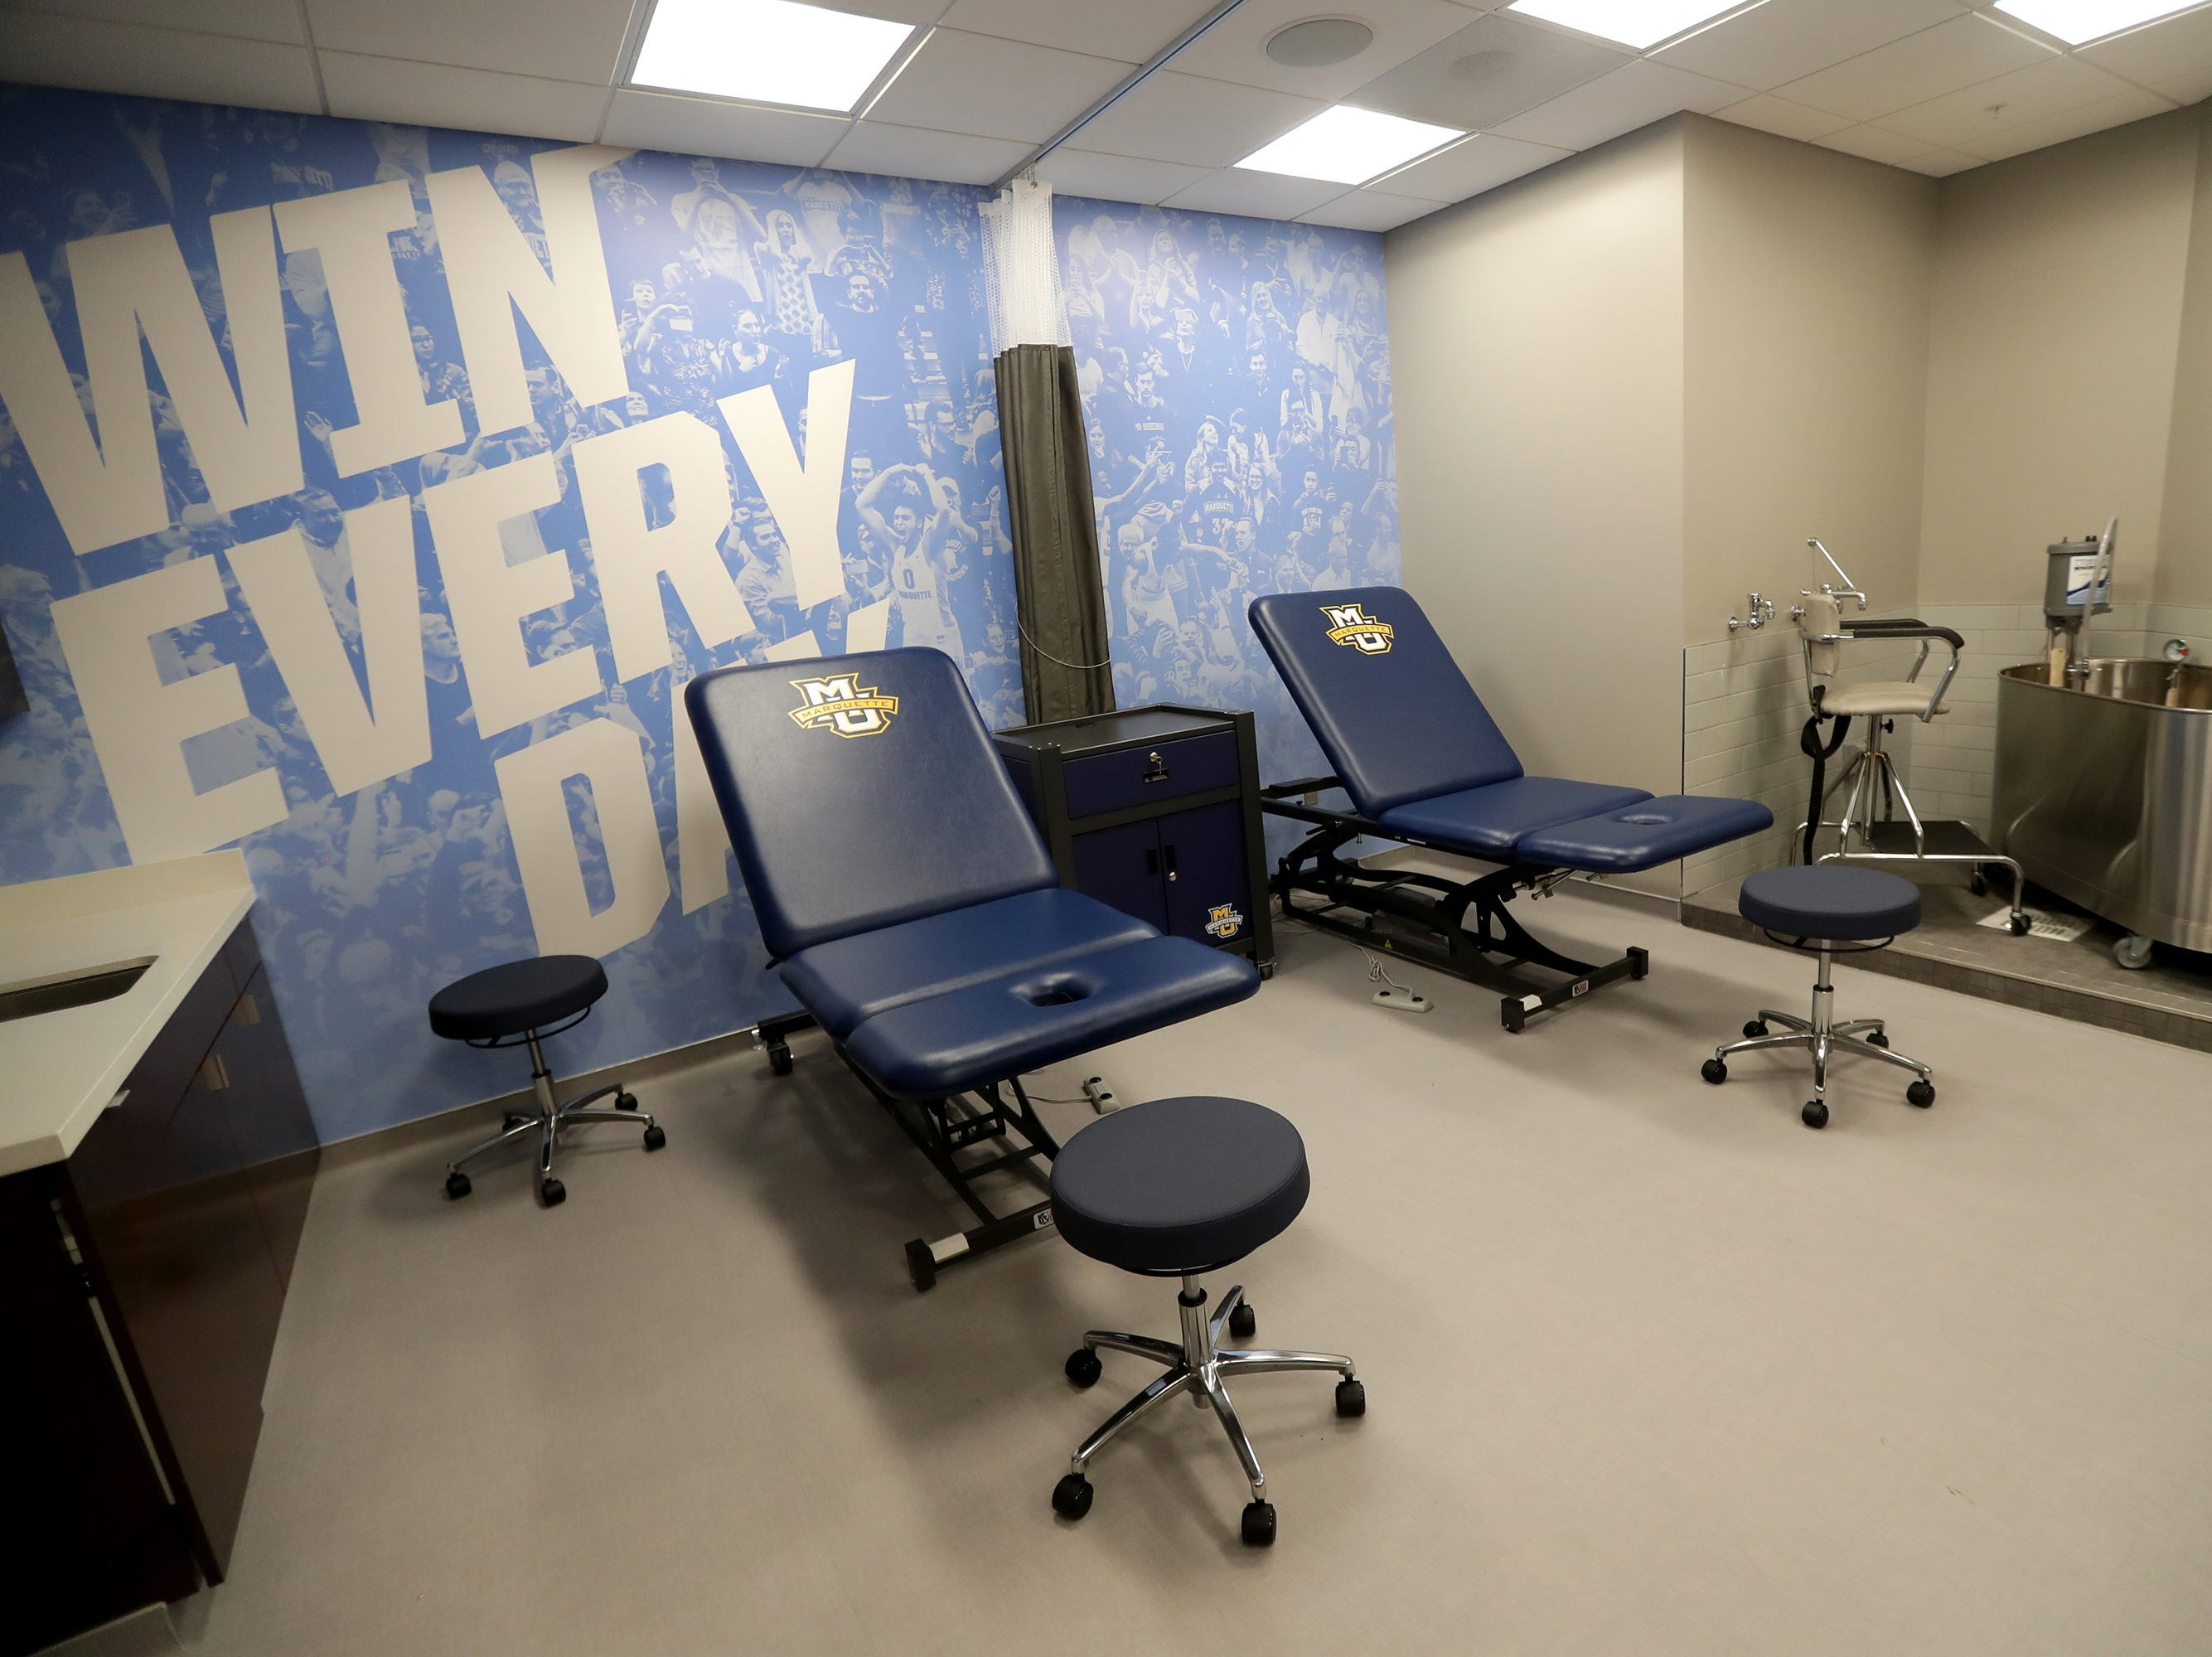 The new training room is just off the locker room.  The Marquette mens' basketball team locker room is complete at the new Fiserve Forum, the home of the Milwaukee Bucks. Monday, August 27, 2018.  -  Photo by Mike De Sisti / Milwaukee Journal Sentinel